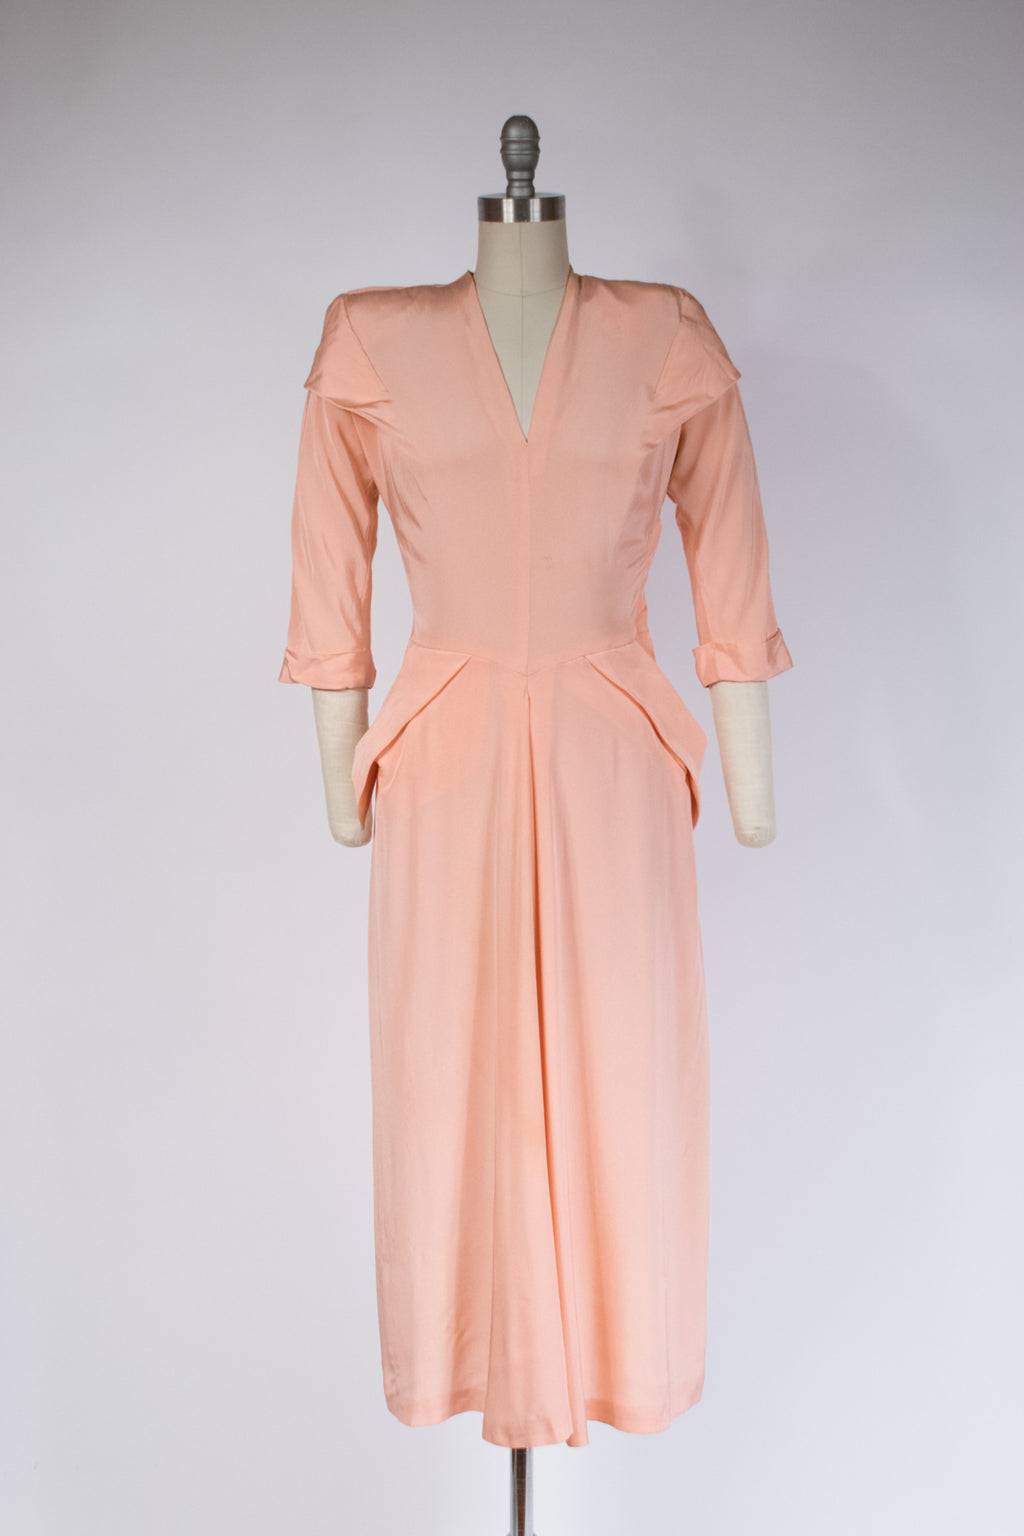 Rare Early 1950s Lilli Diamond Draped Cocktail Dress with Killer Shoulder Pads